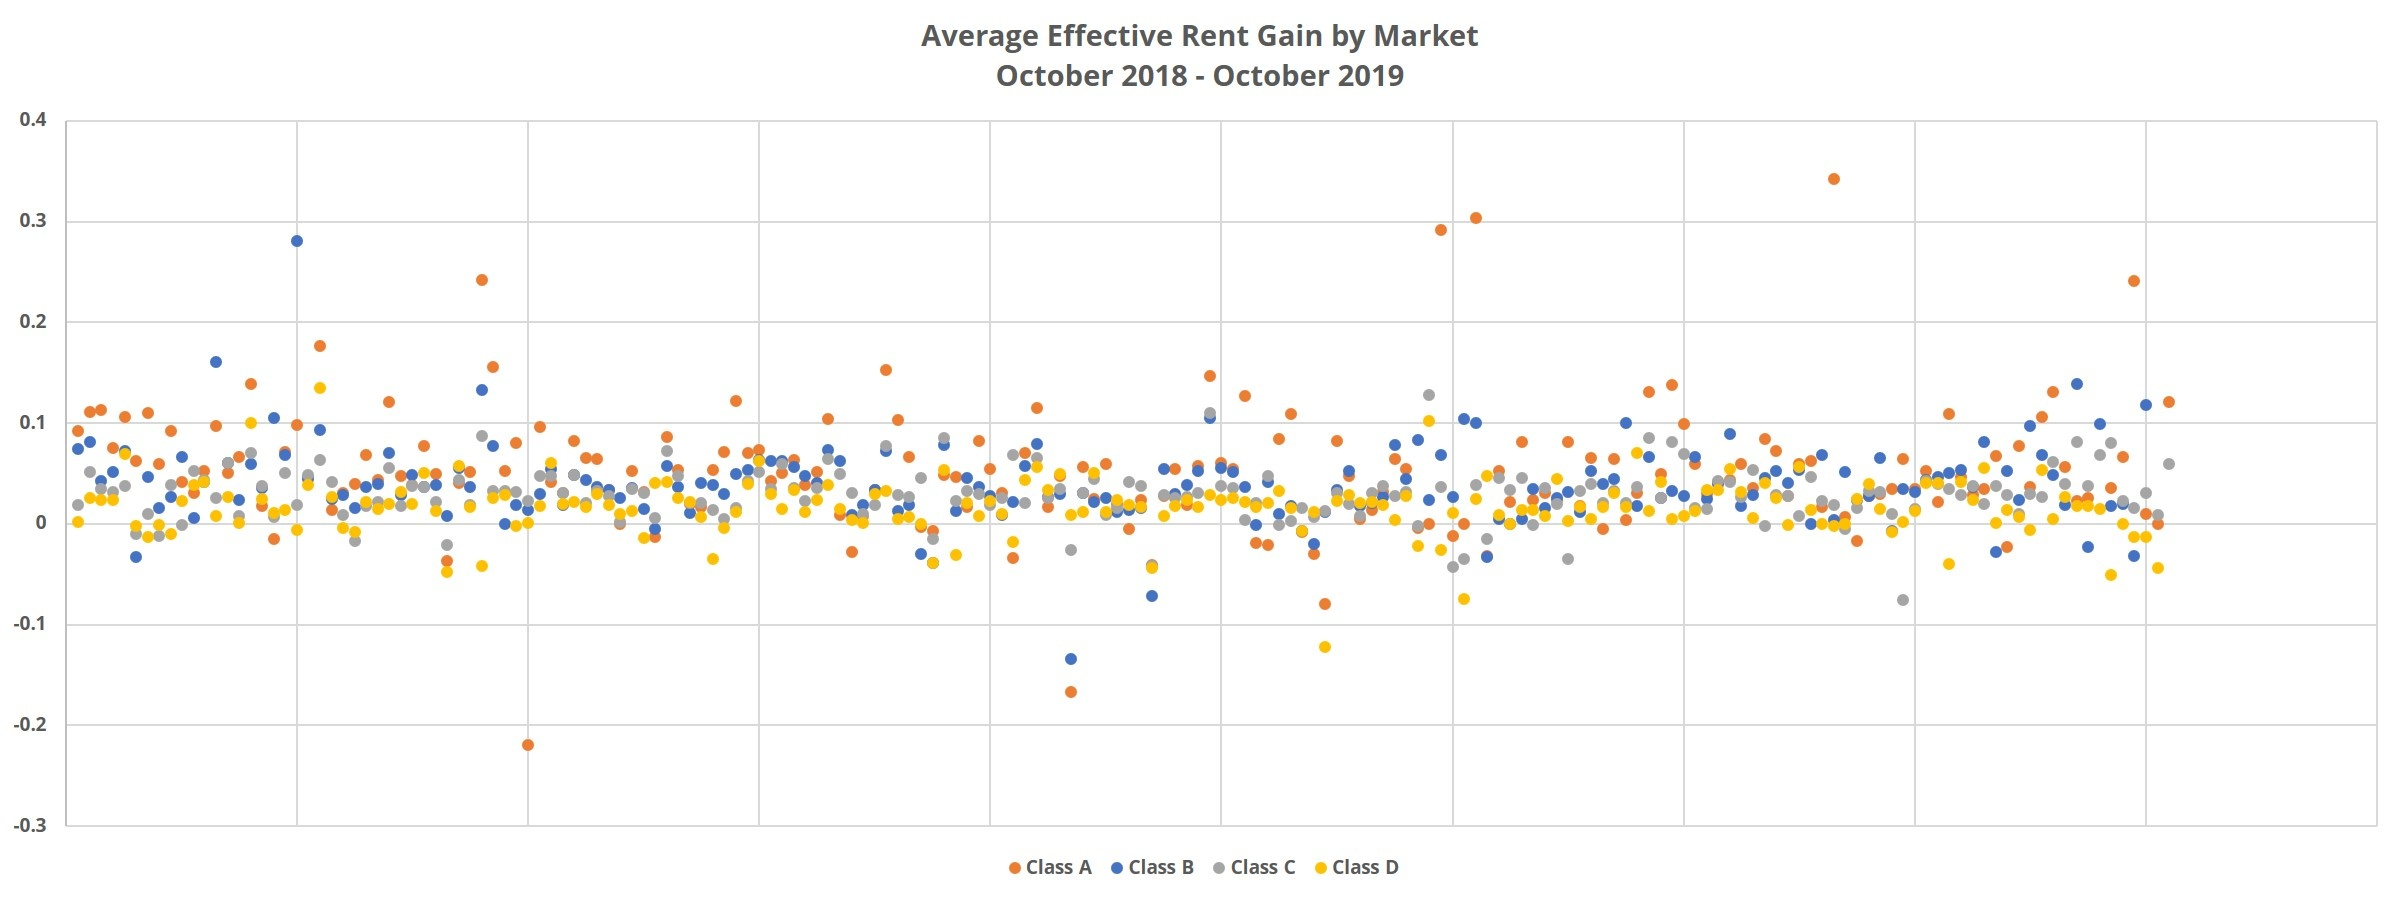 Average Effective Rent Gain by Market October 2018 - October 2019